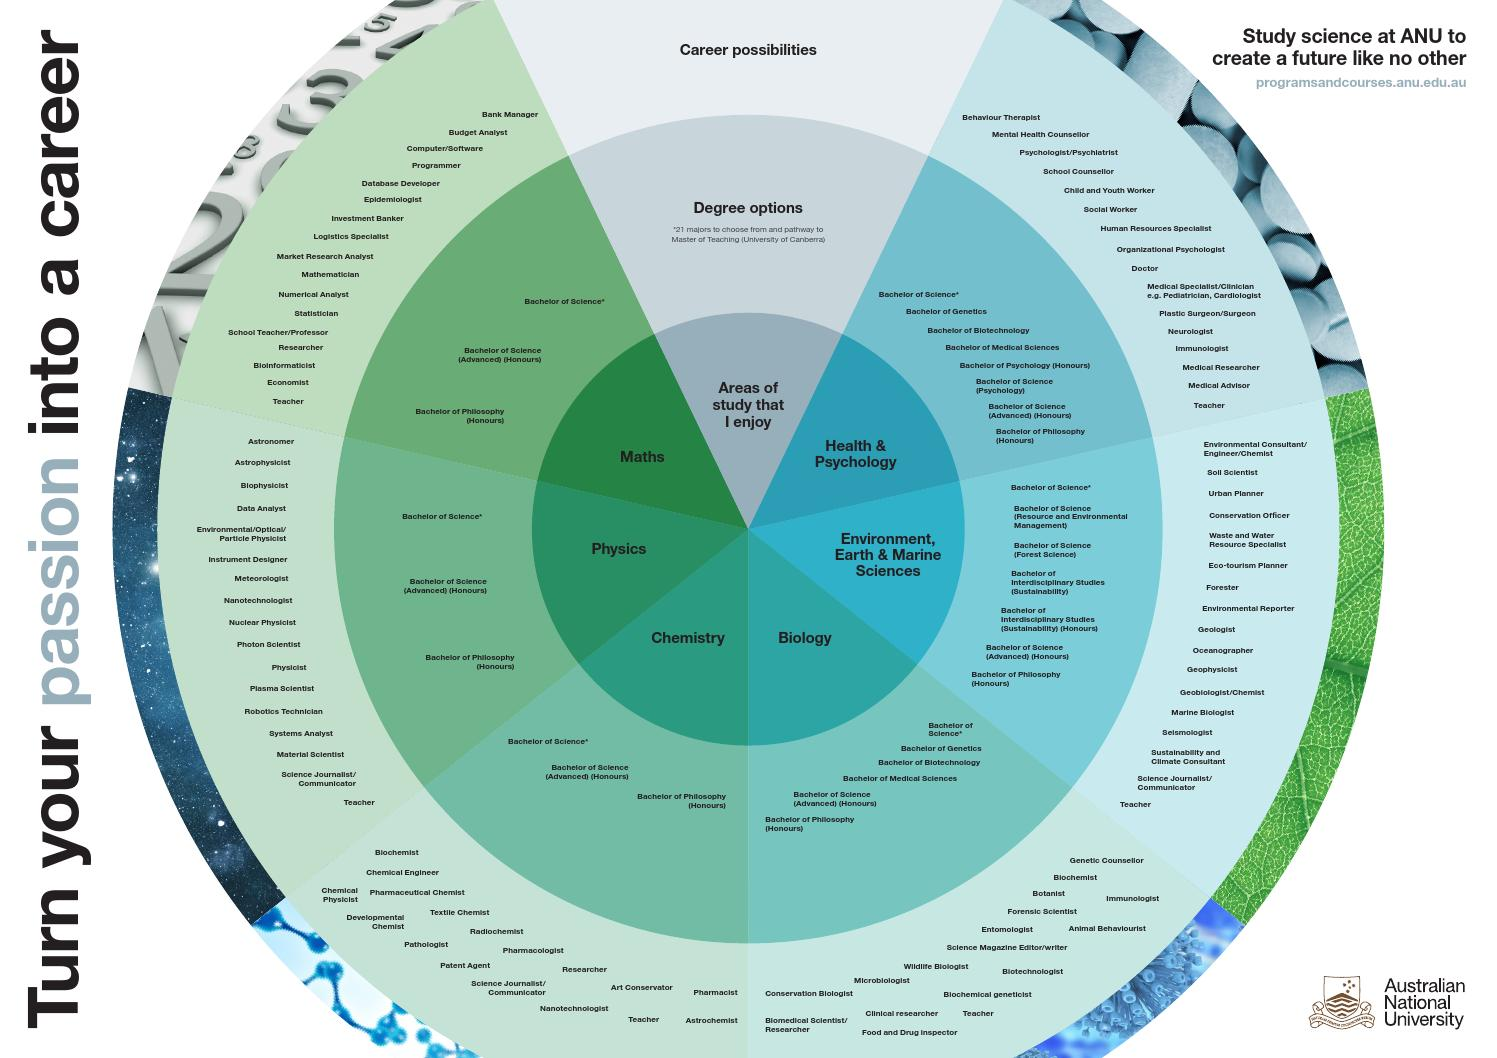 anu science career wheel by anu science administration web